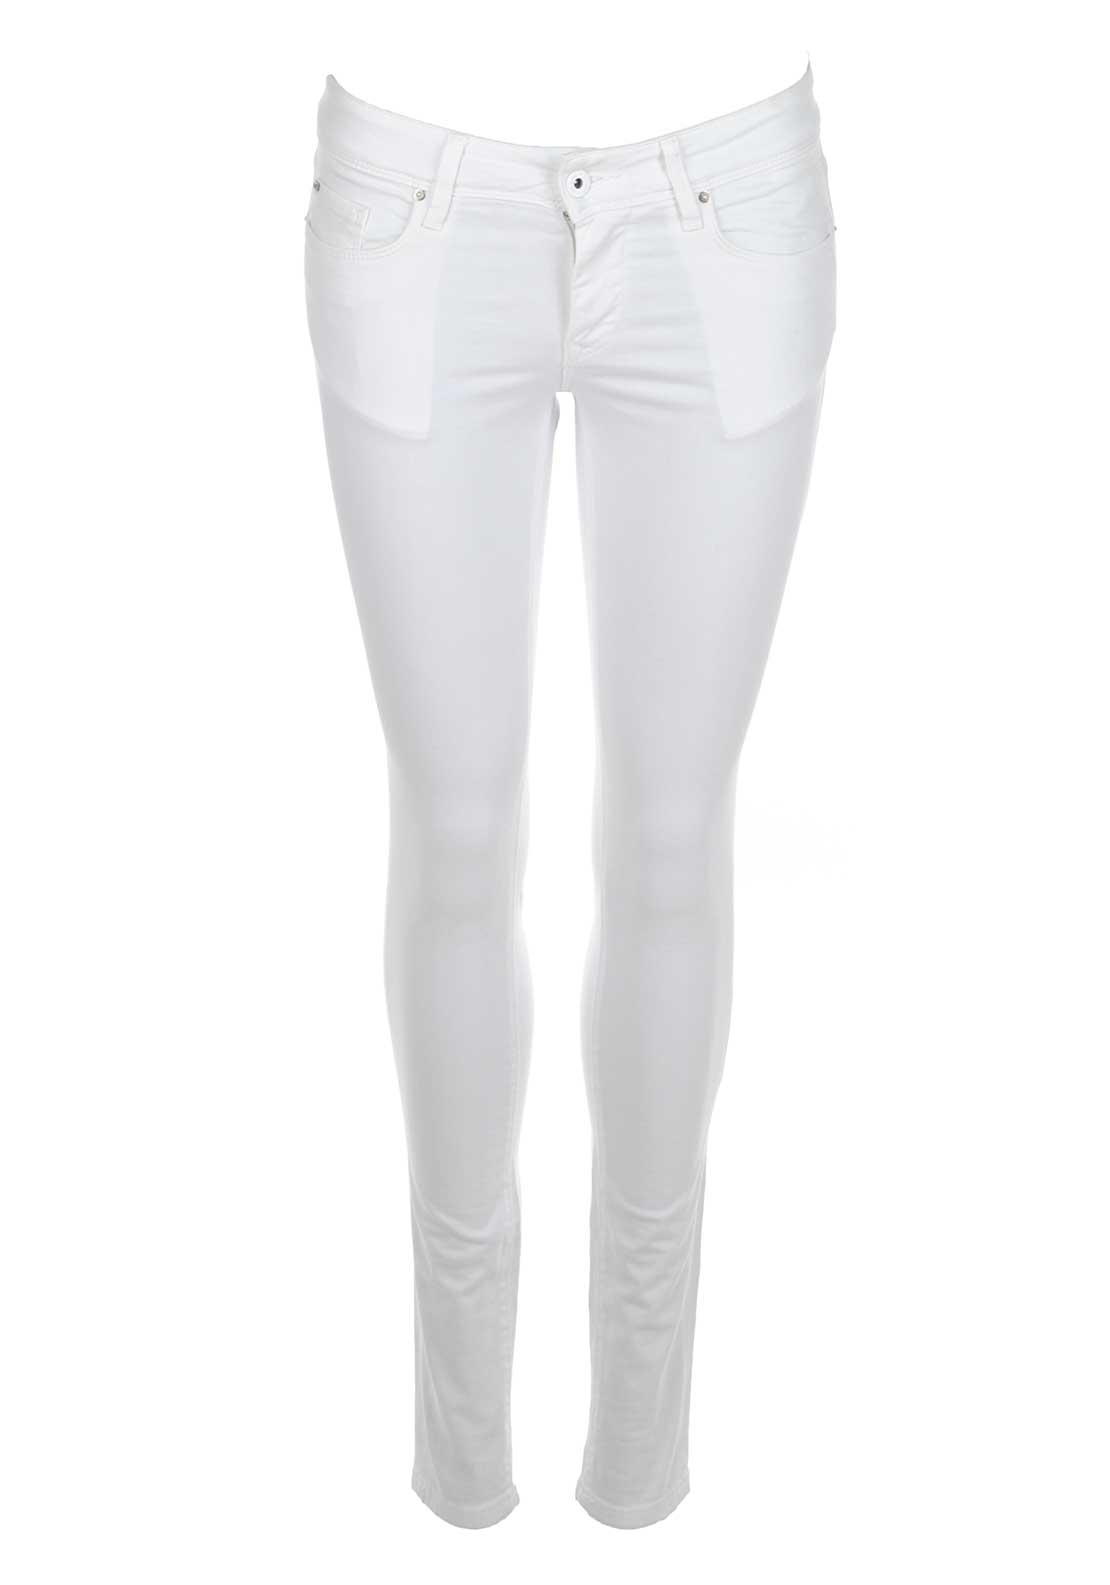 Salsa Secret Colette Super Skinny Jeans, White